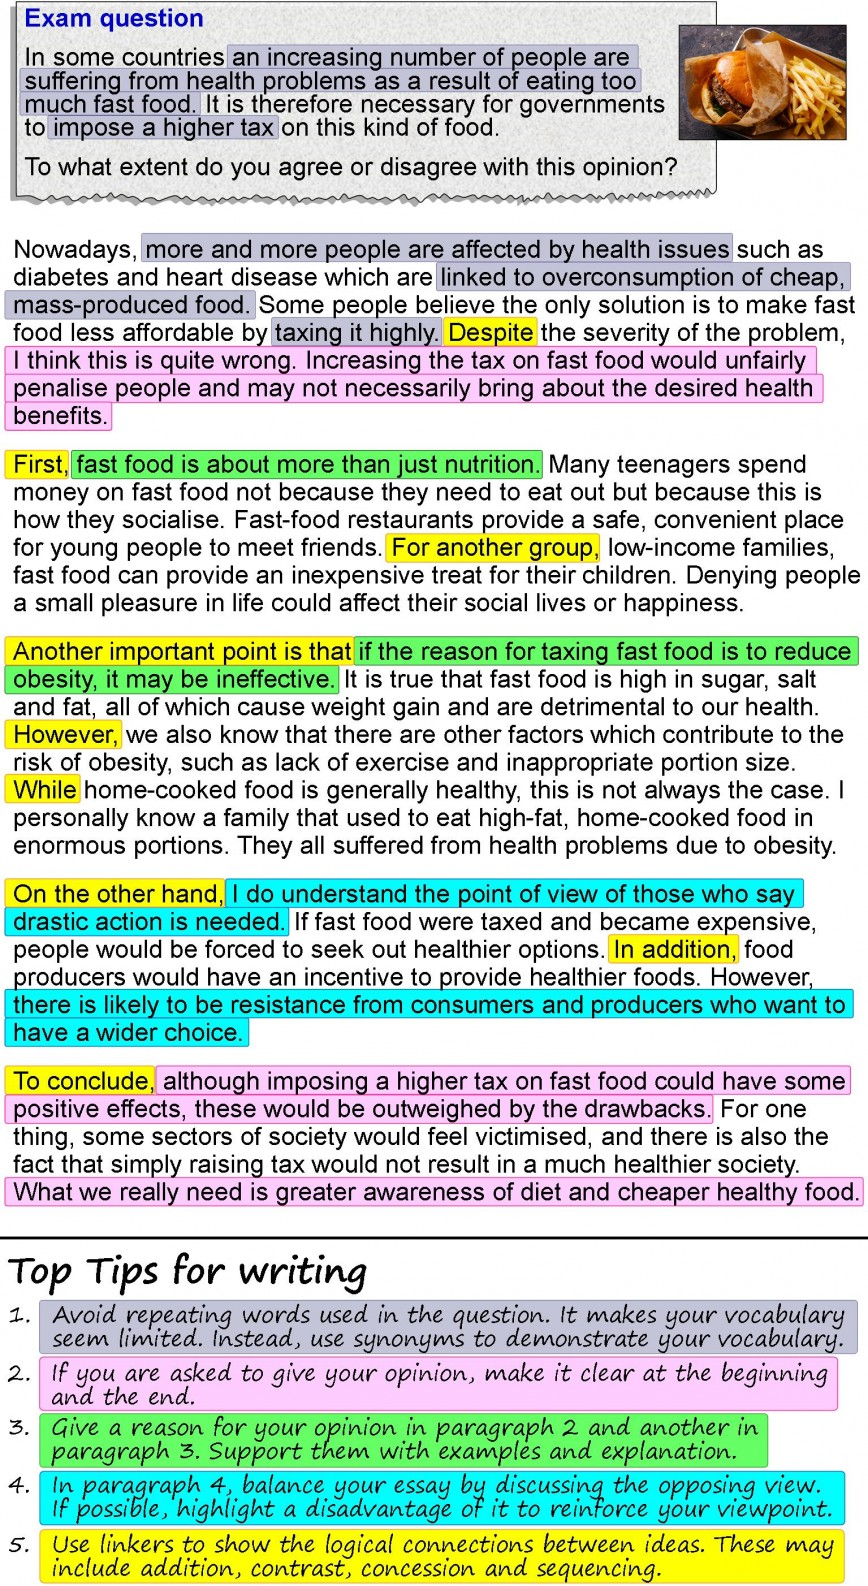 001 Opinion Essay About Fast Food Example An 4 Unbelievable British Council Is A Good Alternative To Cooking For Yourself 868